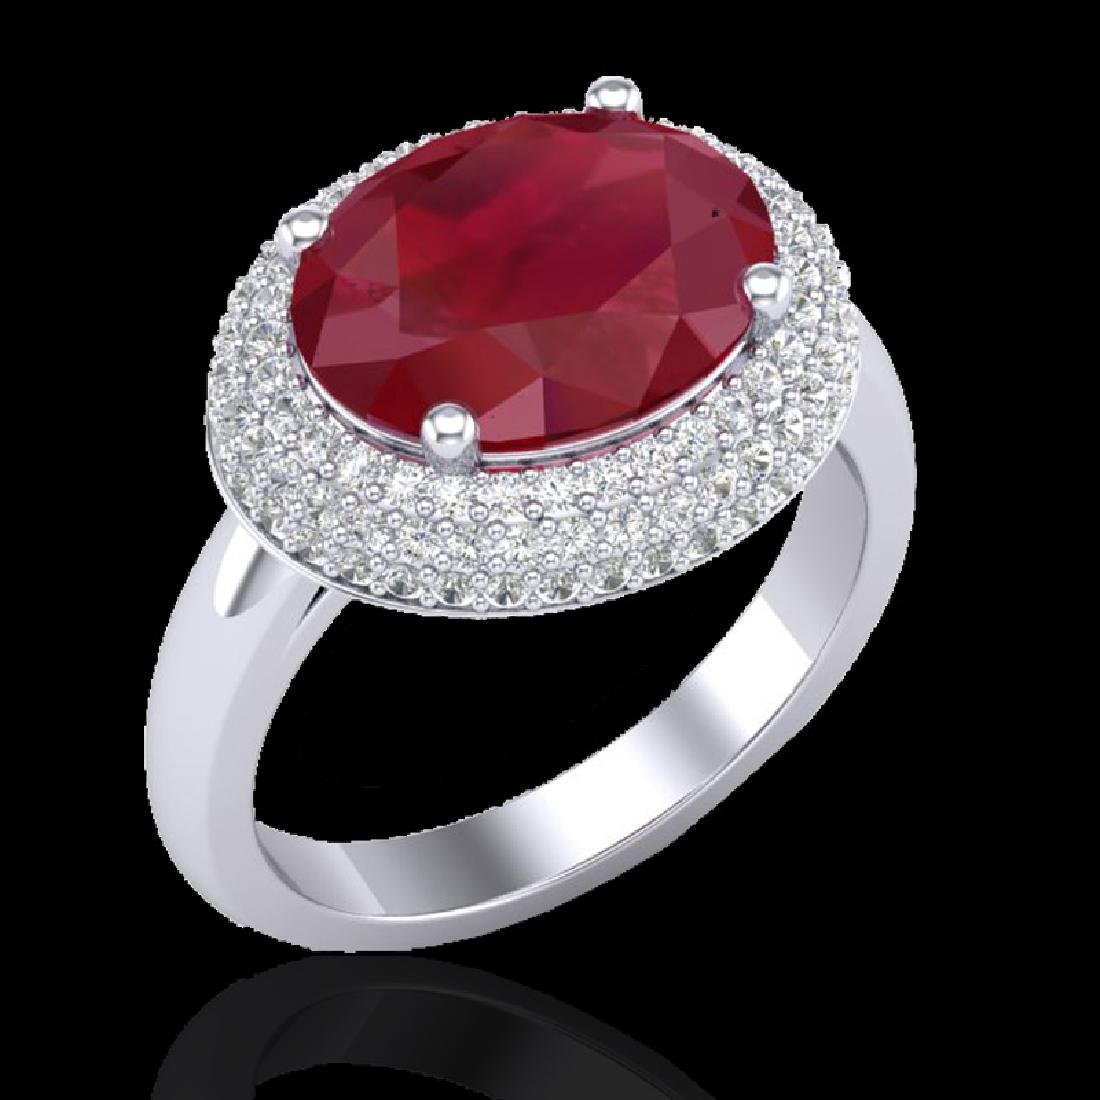 4.50 CTW Ruby & Micro Pave VS/SI Diamond Certified Ring